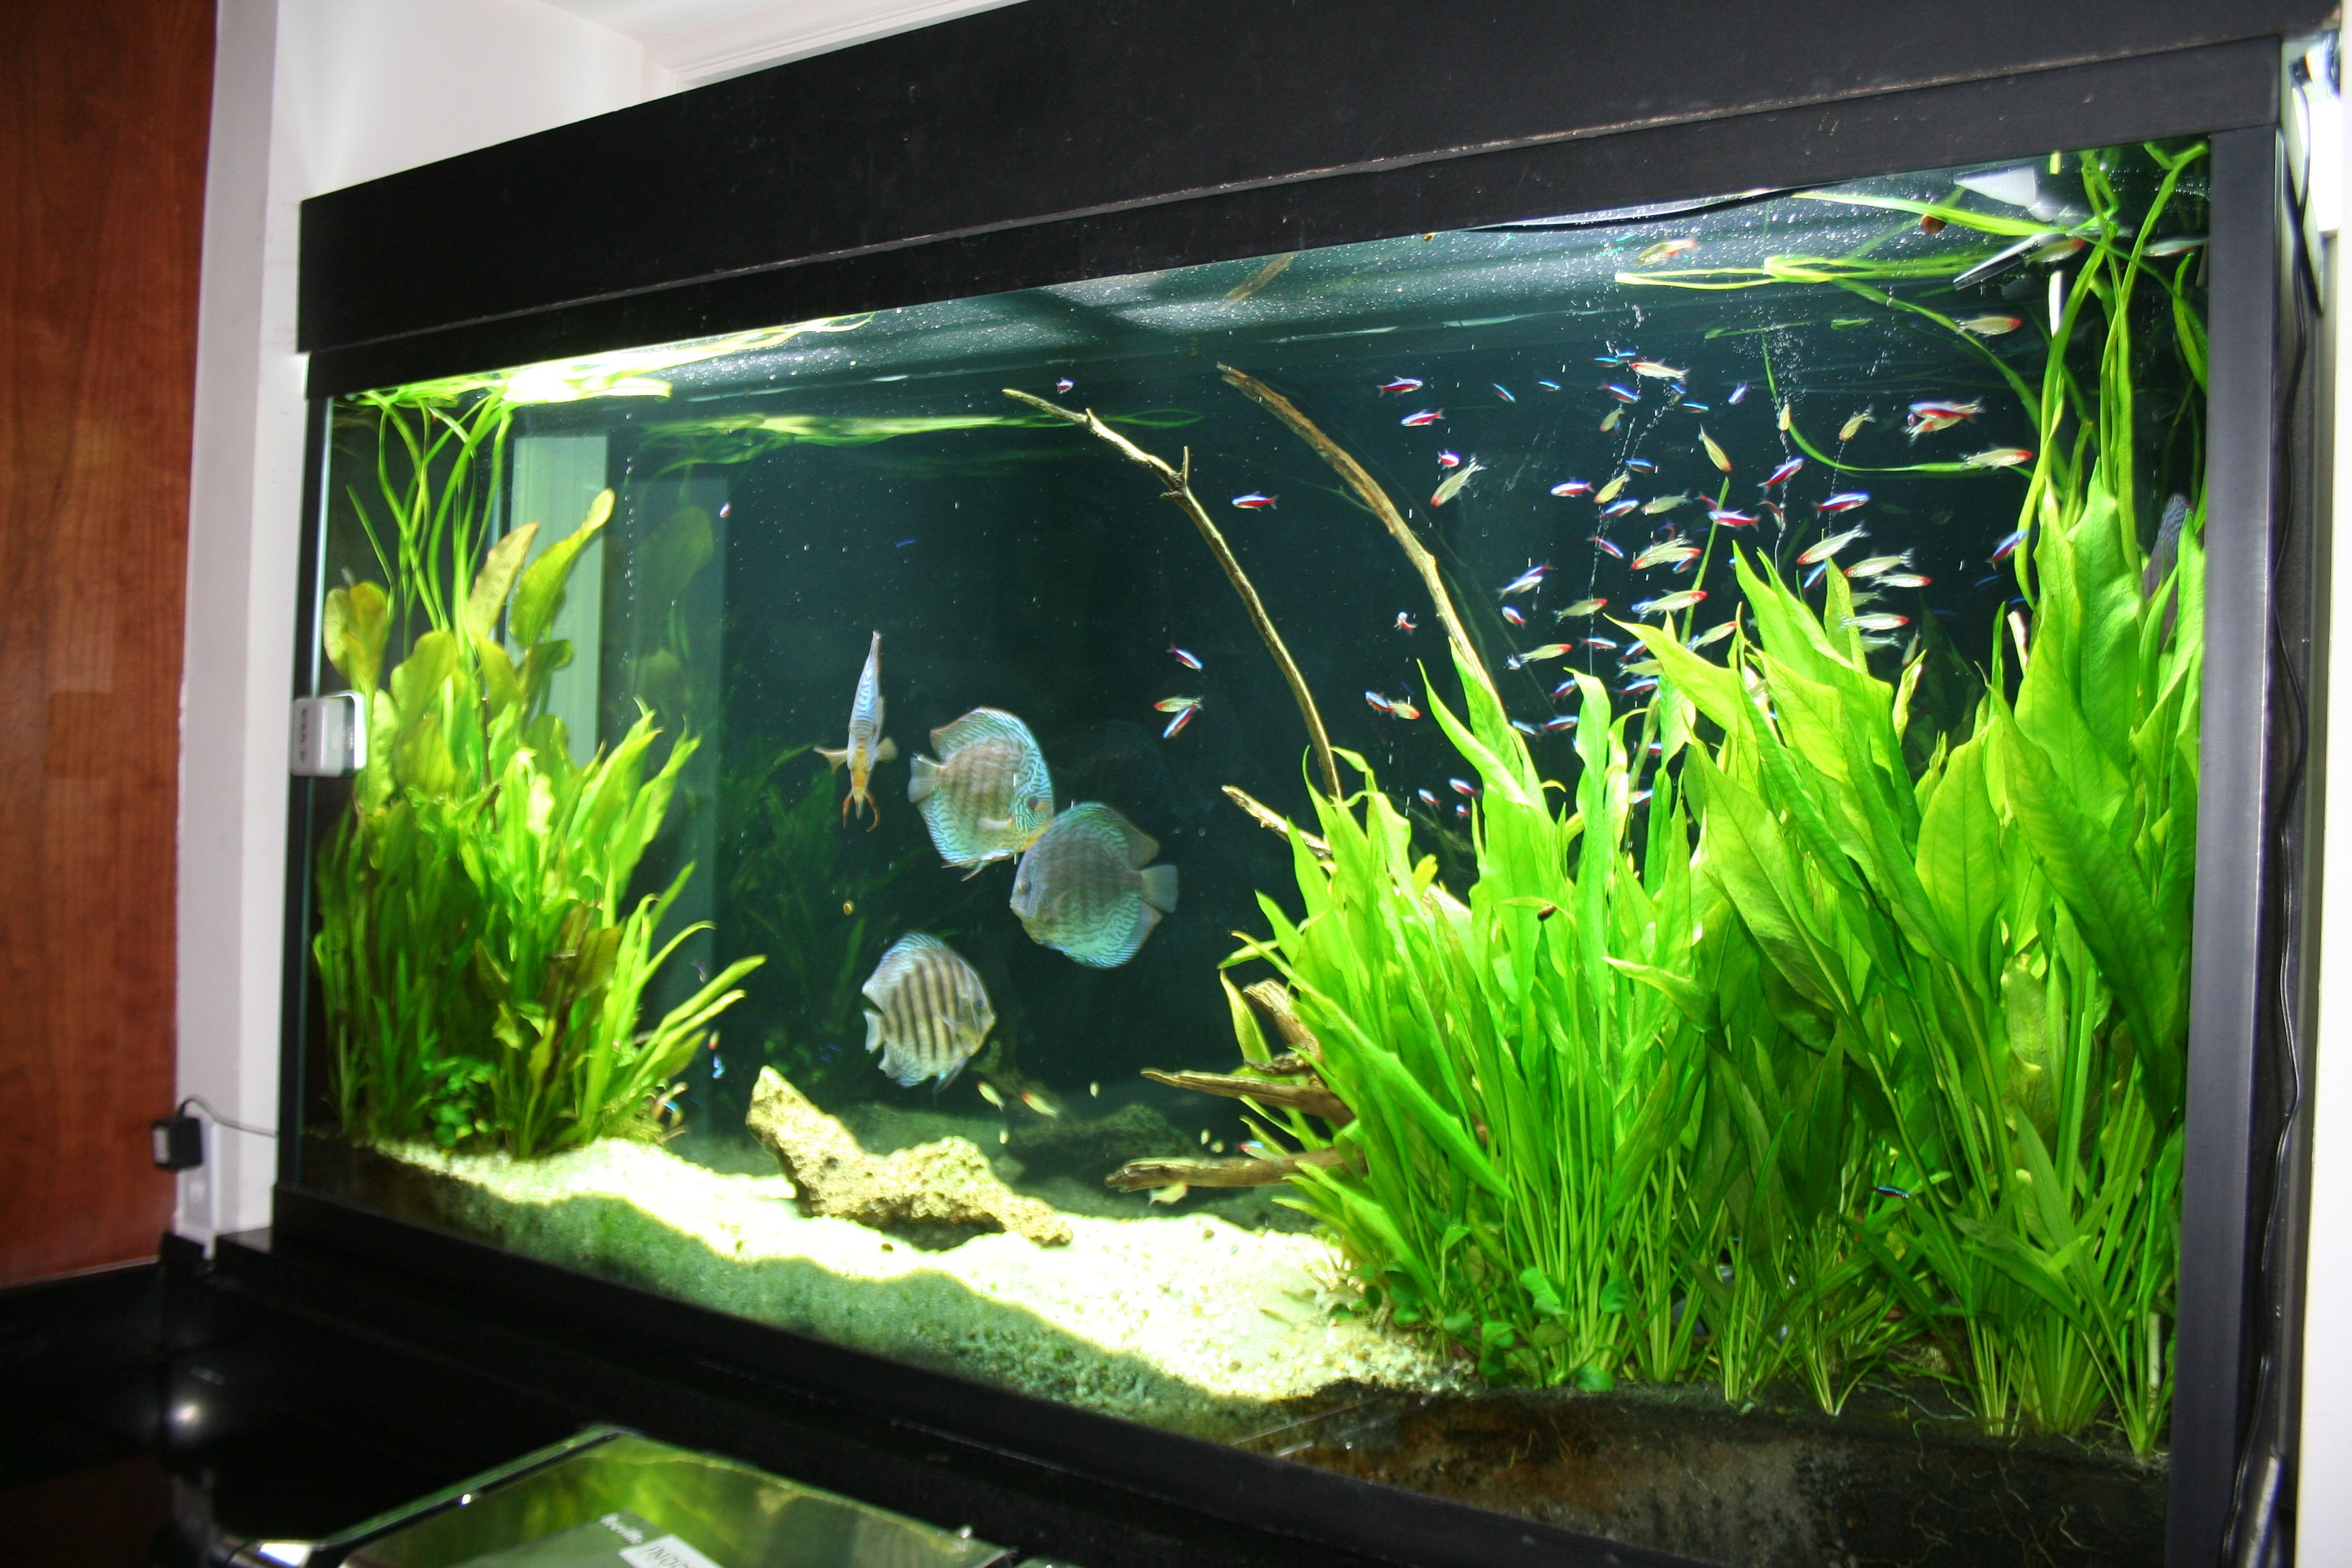 Freshwater aquarium fish tank pictures - Freshwater Planted Fish Tanks Google Search